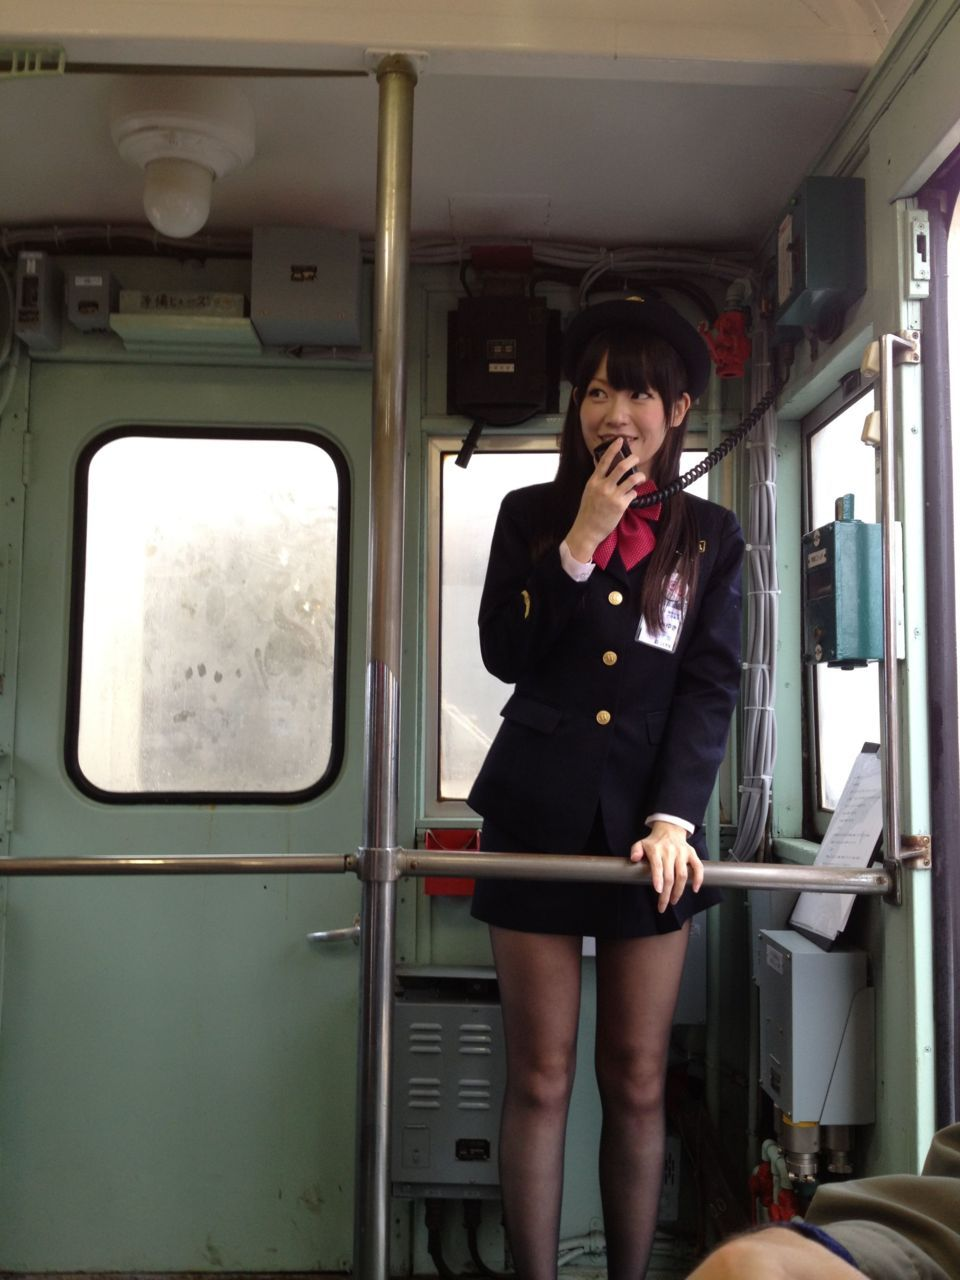 mnknst:  Ow.ly - image uploaded by @RyokoIhara ことでんの車掌さんやばい。